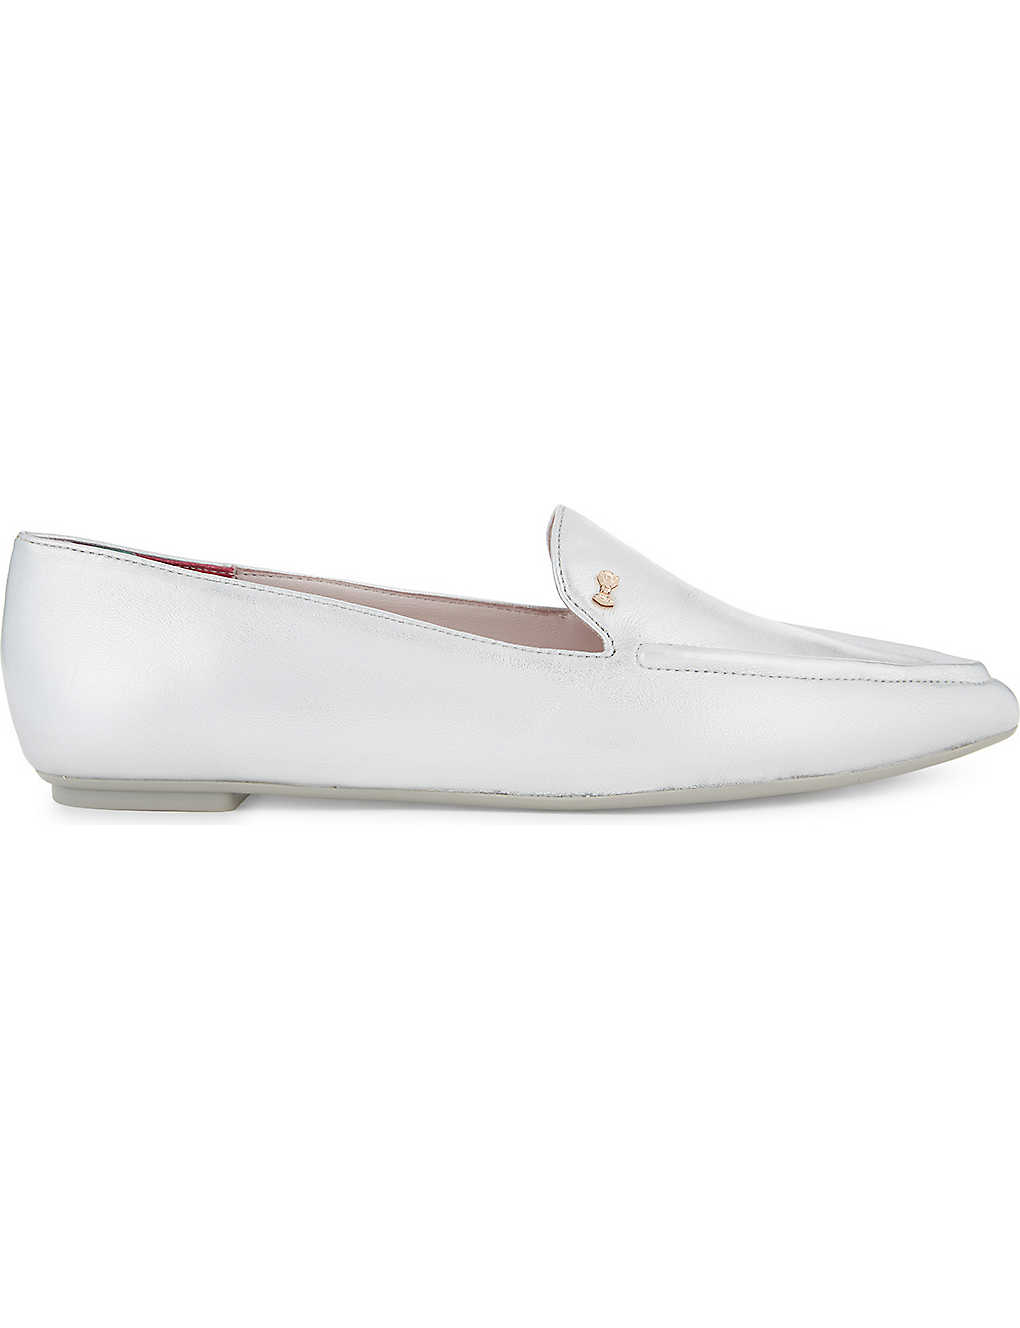 008b58625a9708 TED BAKER - Shlim leather loafers